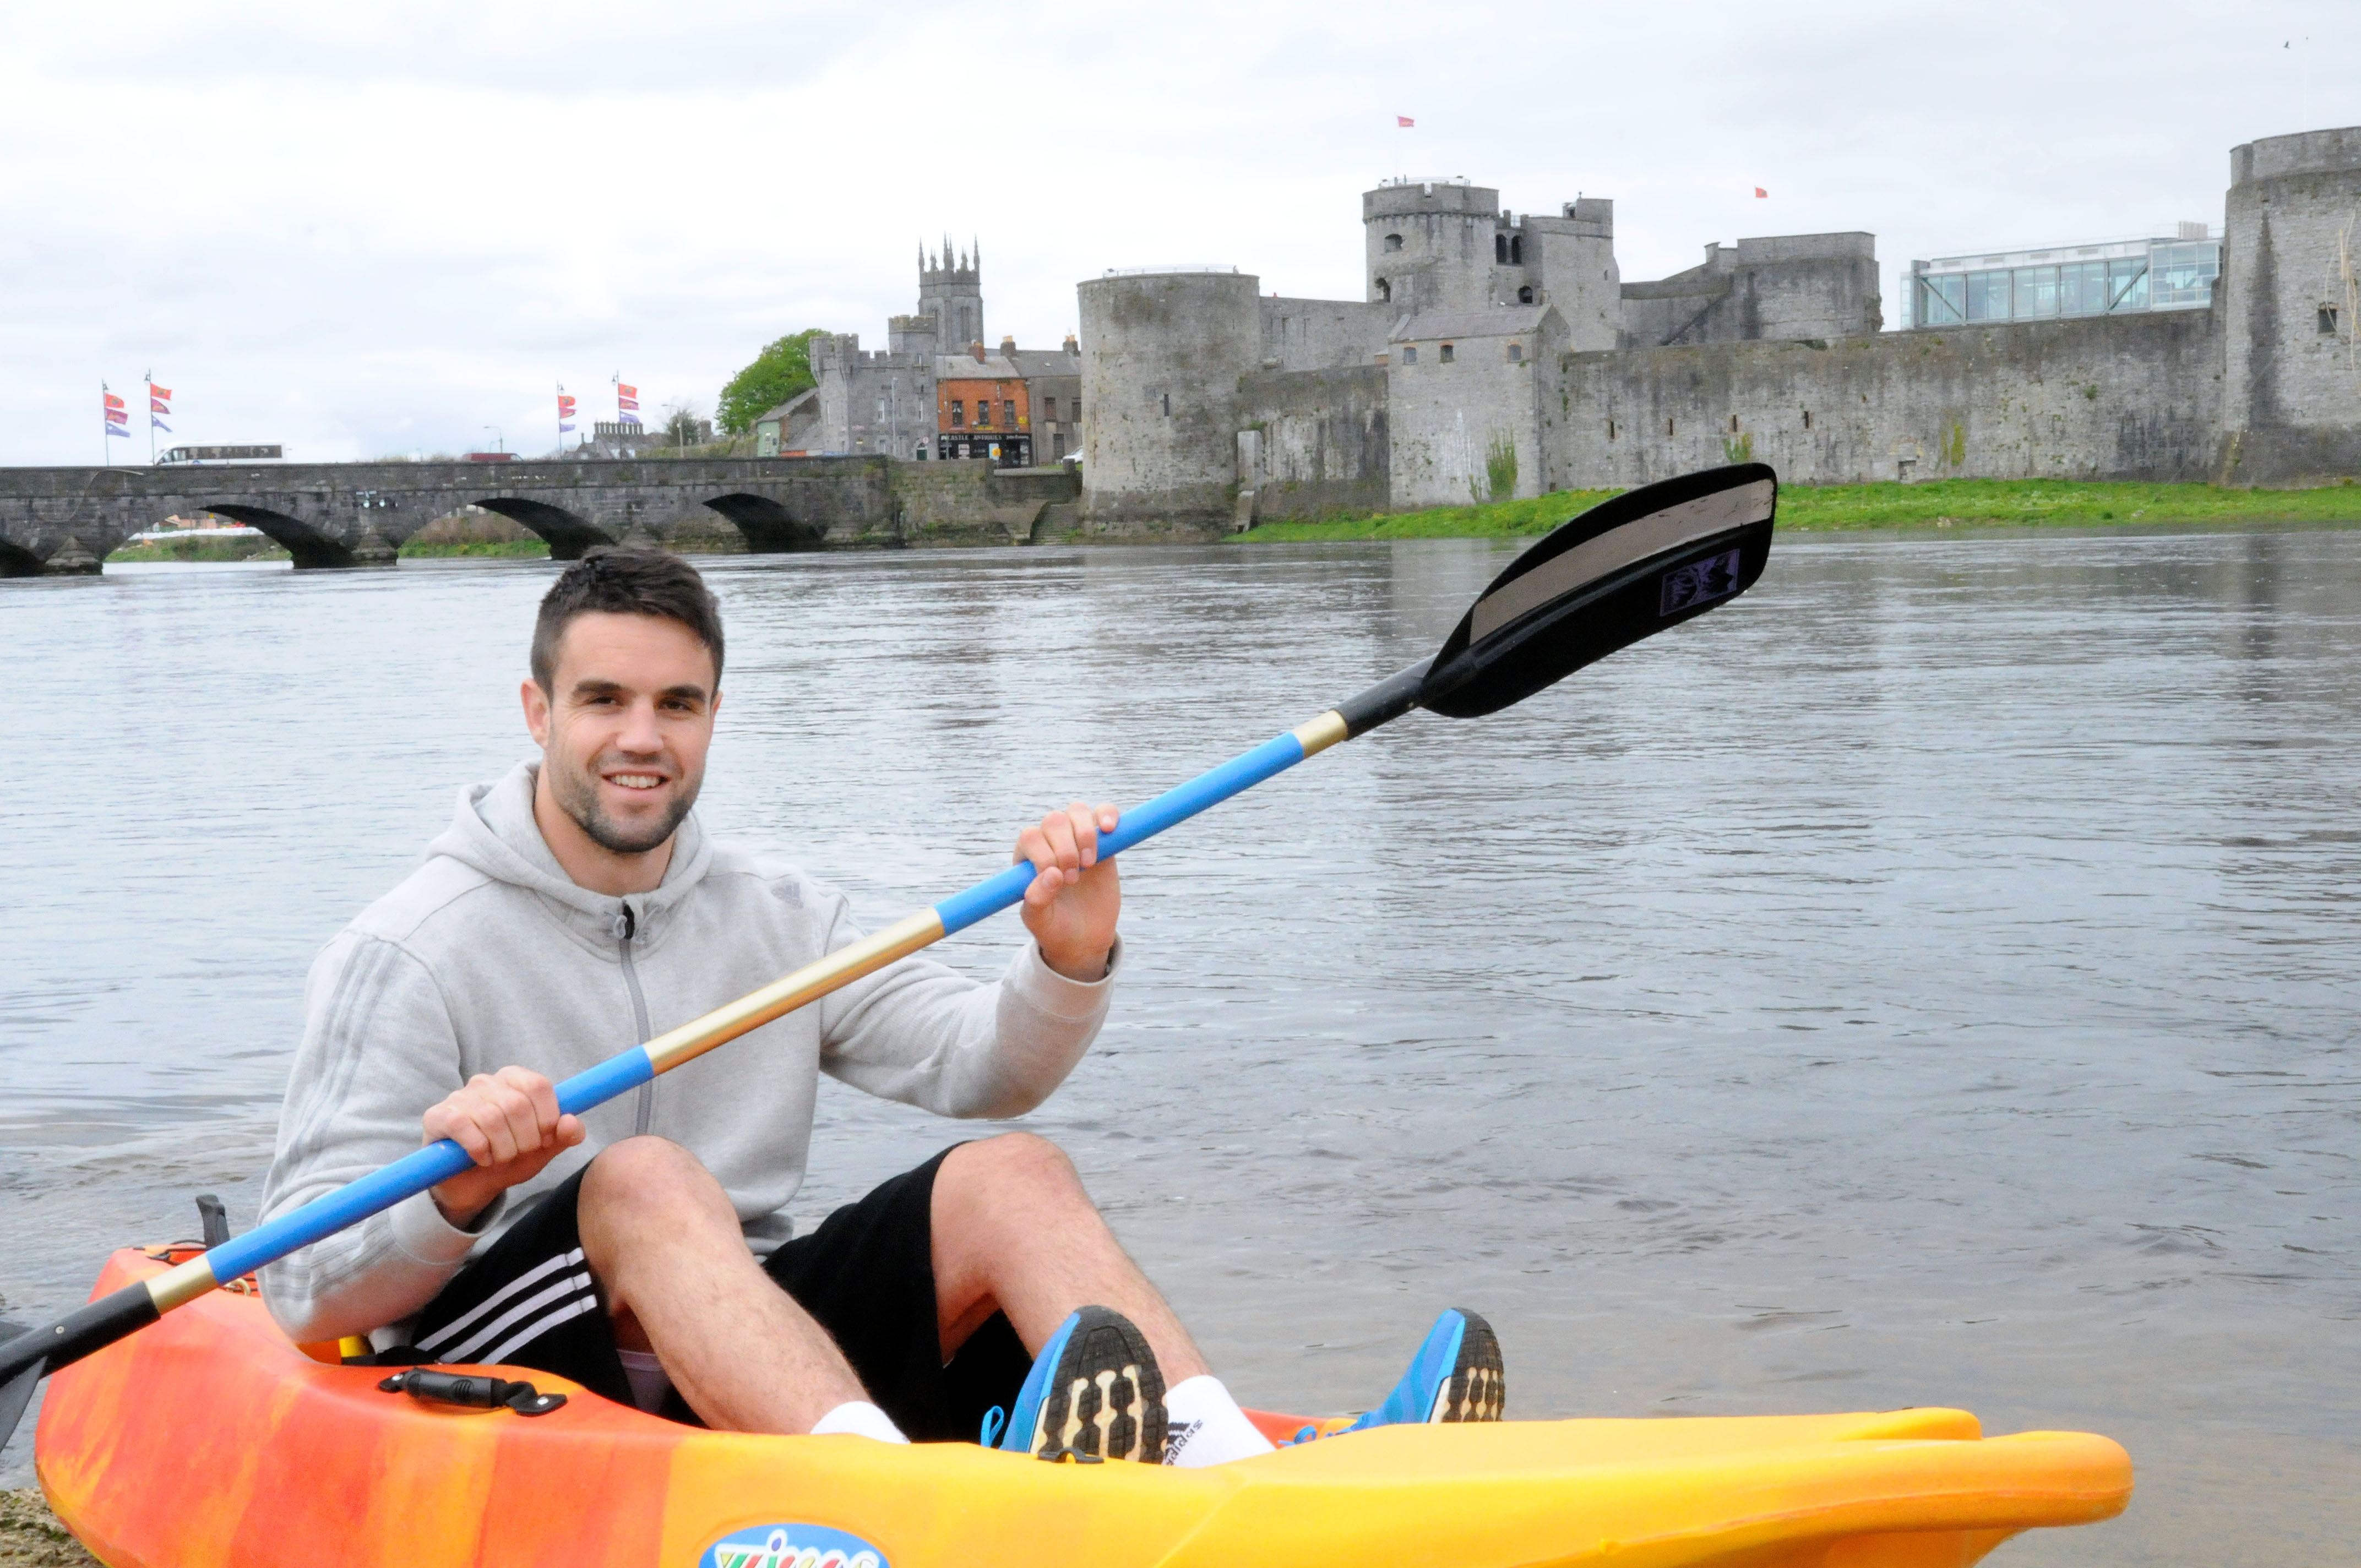 kayak through the heart of the Limerick City under famous